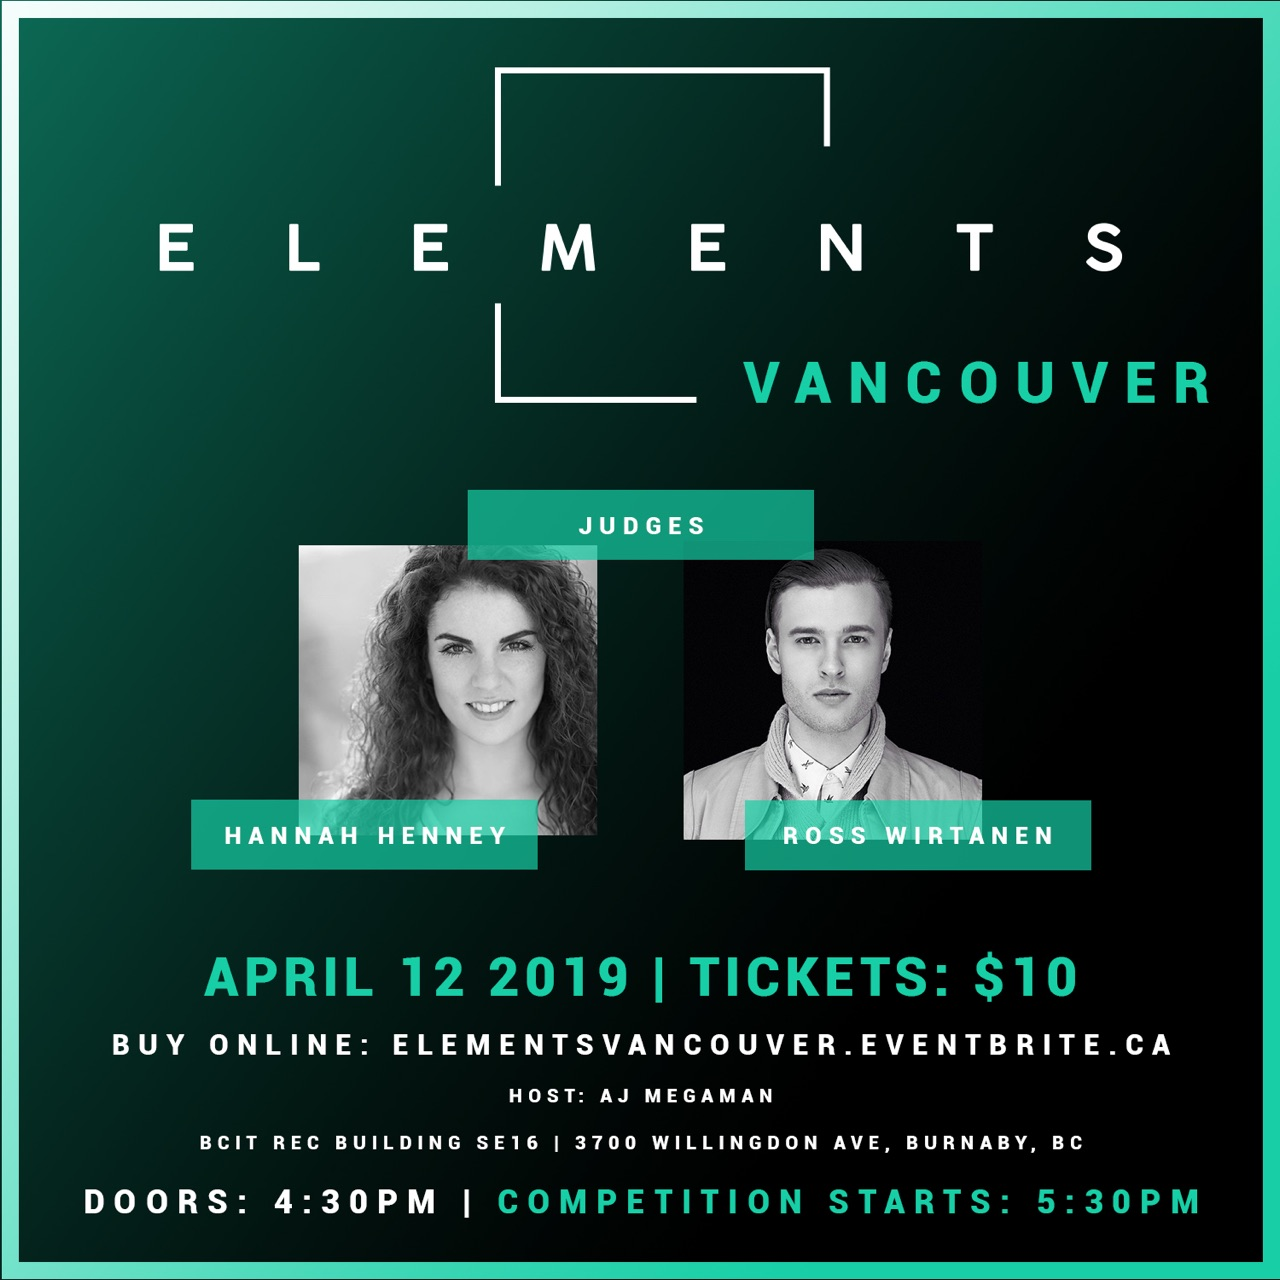 Elements Vancouver 19 - Main Flyer.jpeg